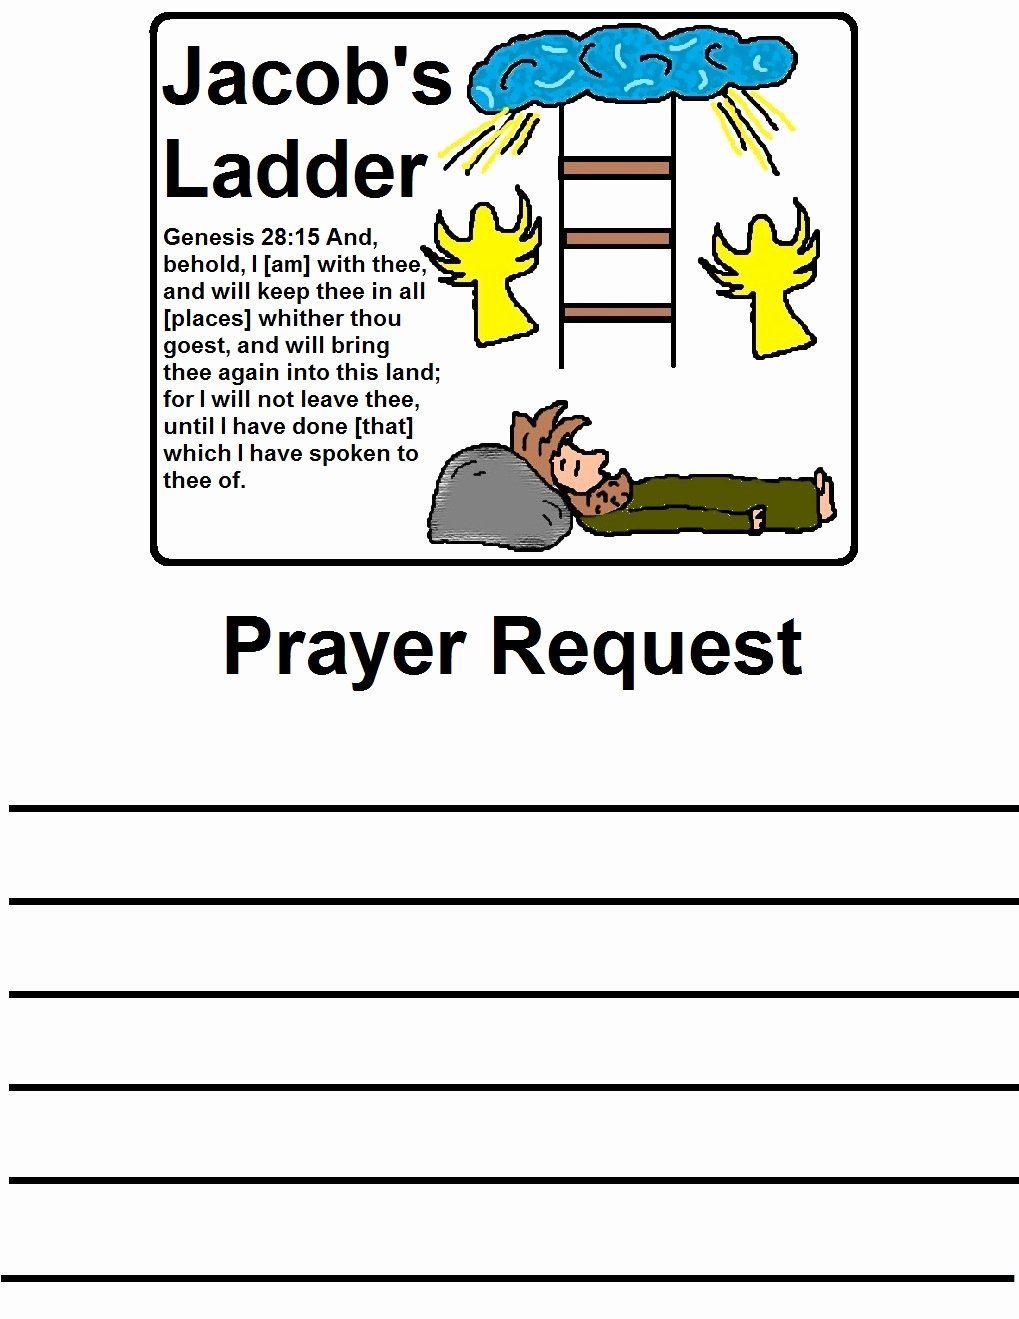 Prayer Request Cards Template Unique Jacob S Ladder Sunday School Lesson